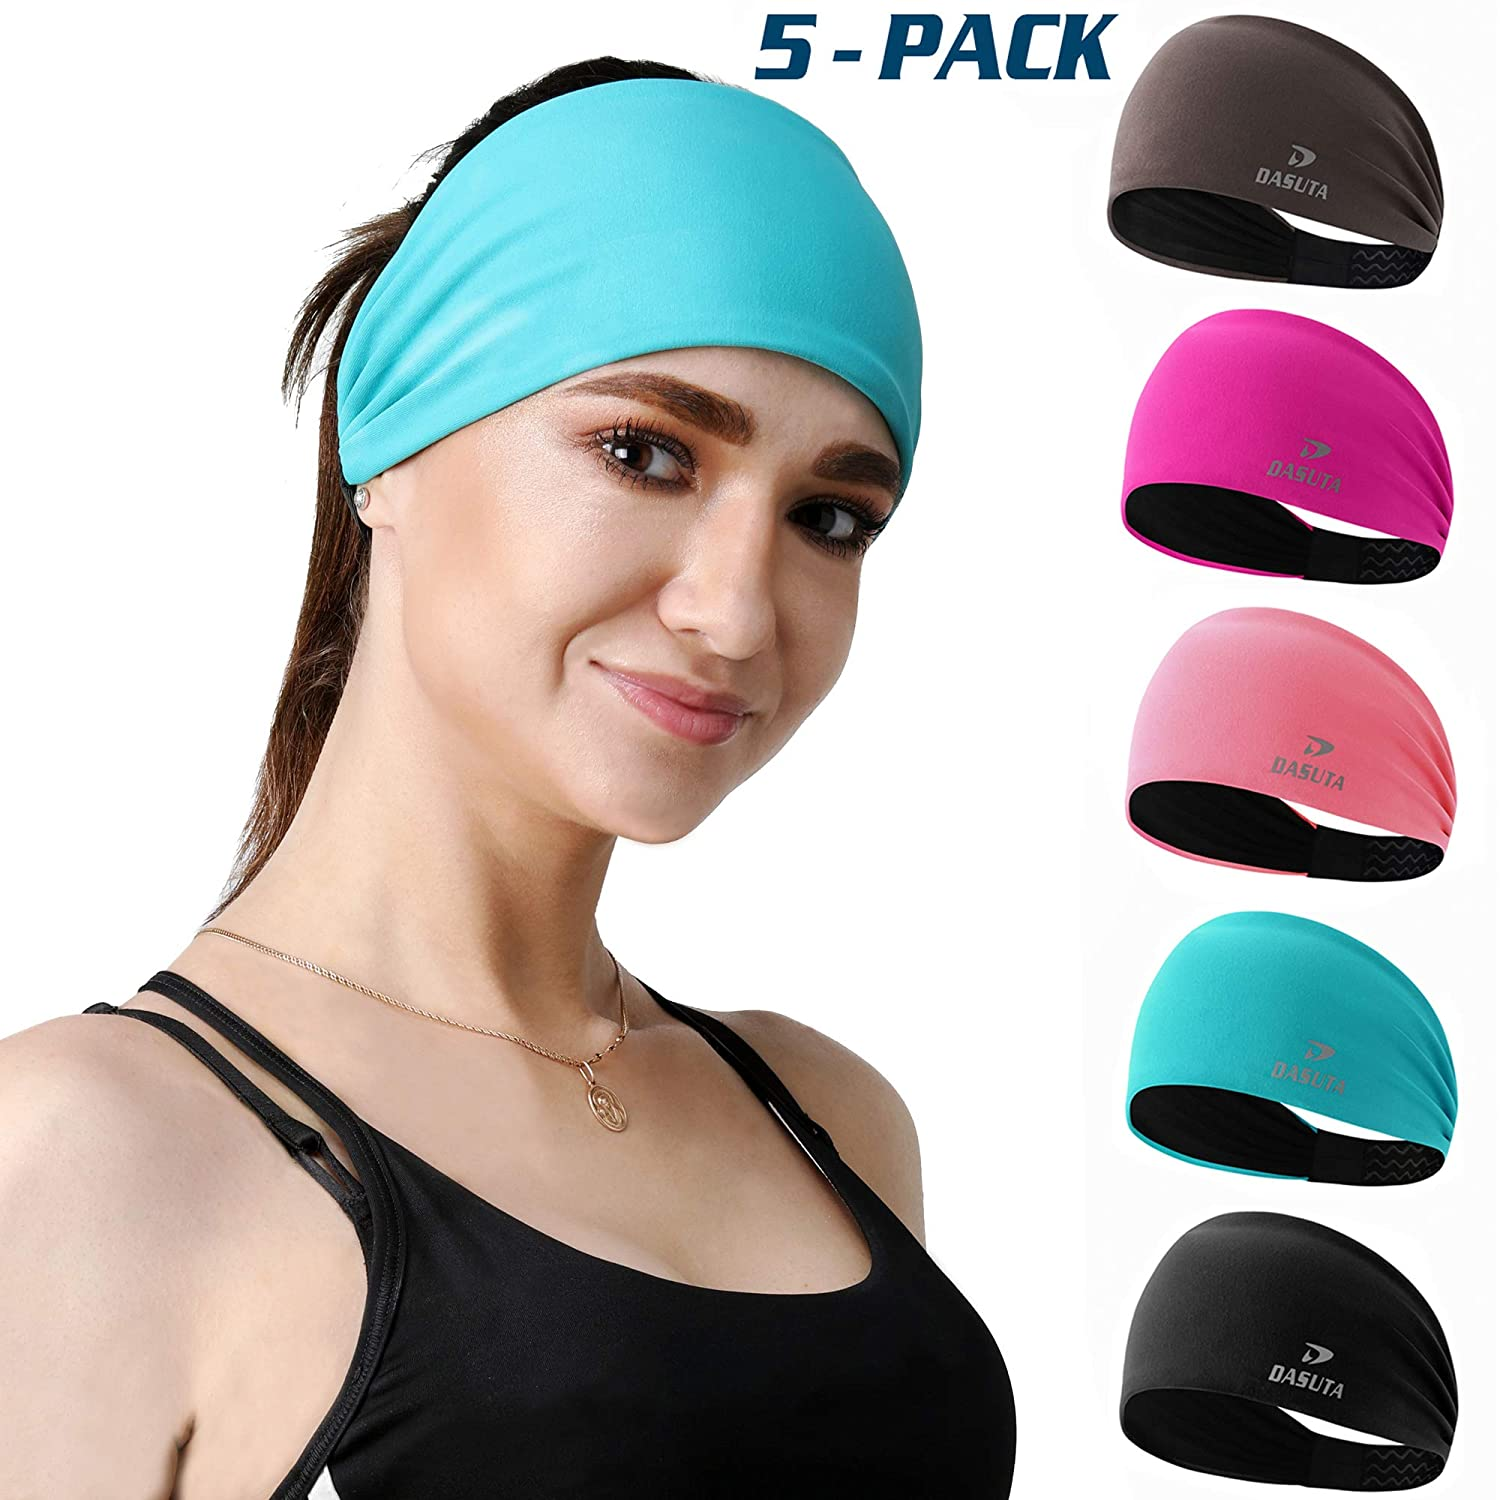 DASUTA 5 Pack Non-Slip Headband for Women Men Girls Boys - Moisture Wicking Silicone Wide Sweatband & Elastic Sports Headbands for Workout, Yoga, Running, Fitness, Bike, Hair Head Band Set with Box